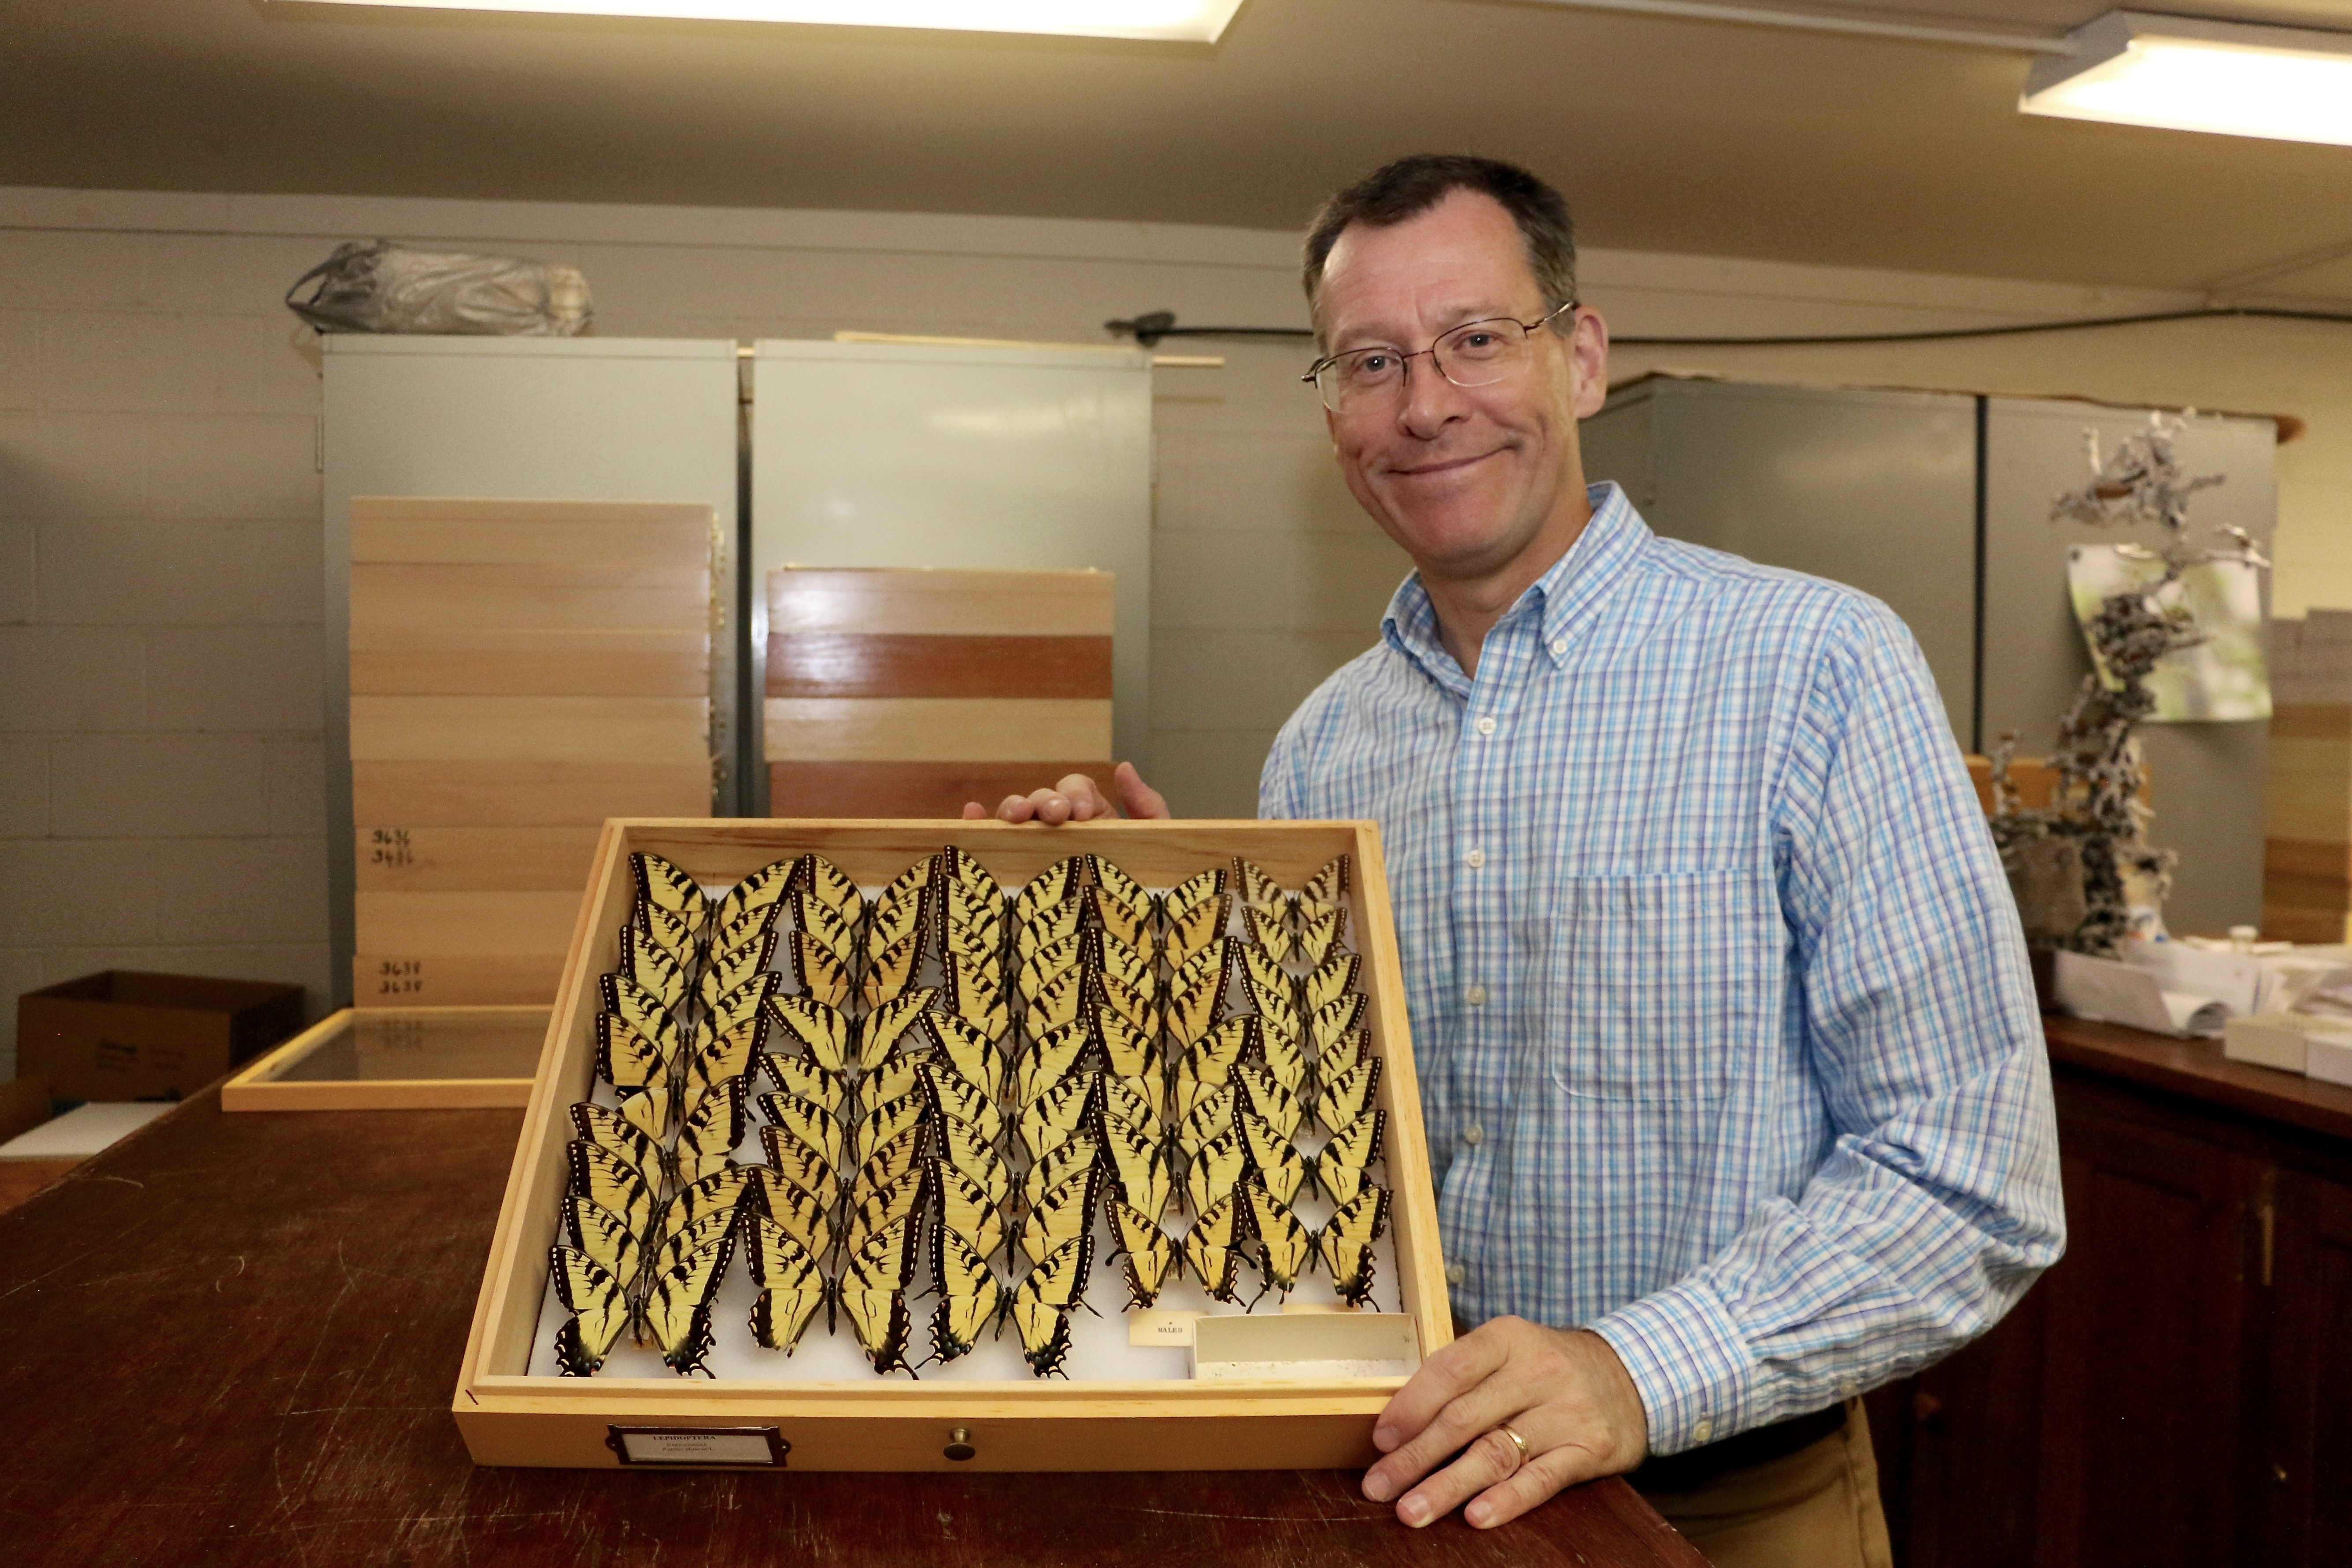 Joe McHugh, professor of entomology at the UGA College of Agricultural and Environmental Sciences and curator of the arthropod collection at the Georgia Museum of Natural History, is helping to lead a large multi-institution effort to digitize millions of butterfly and moth specimens across North America.